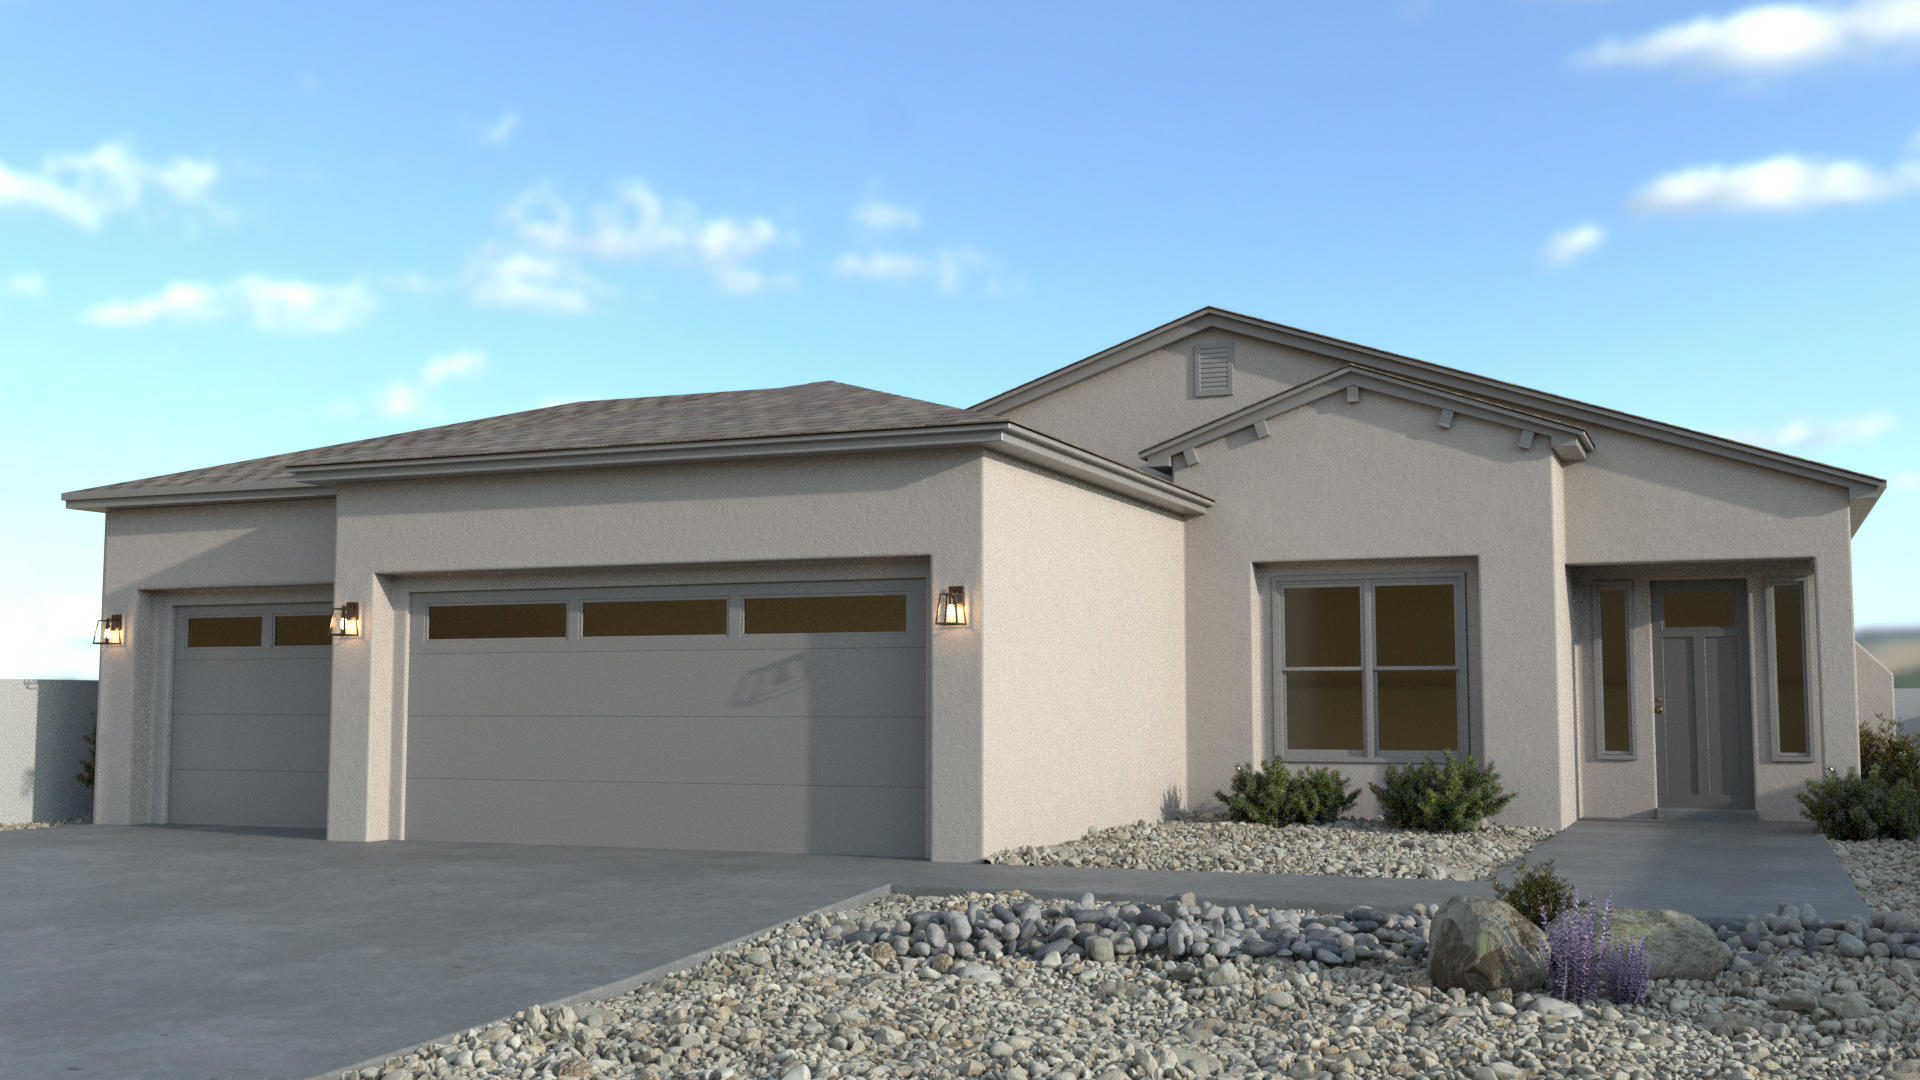 *Proposed Construction Listing*ANTALOPE FLOORPLANWe are excited to announce that RayLee Homes is back in Volterra. LARGE LOT, 3 CAR GARAGE, CUSTOM CHANGES ALLOWED! Schedule an appointment today to build your DREAM HOME with RayLee Homes at Volterra! Don't settle and buy Local!